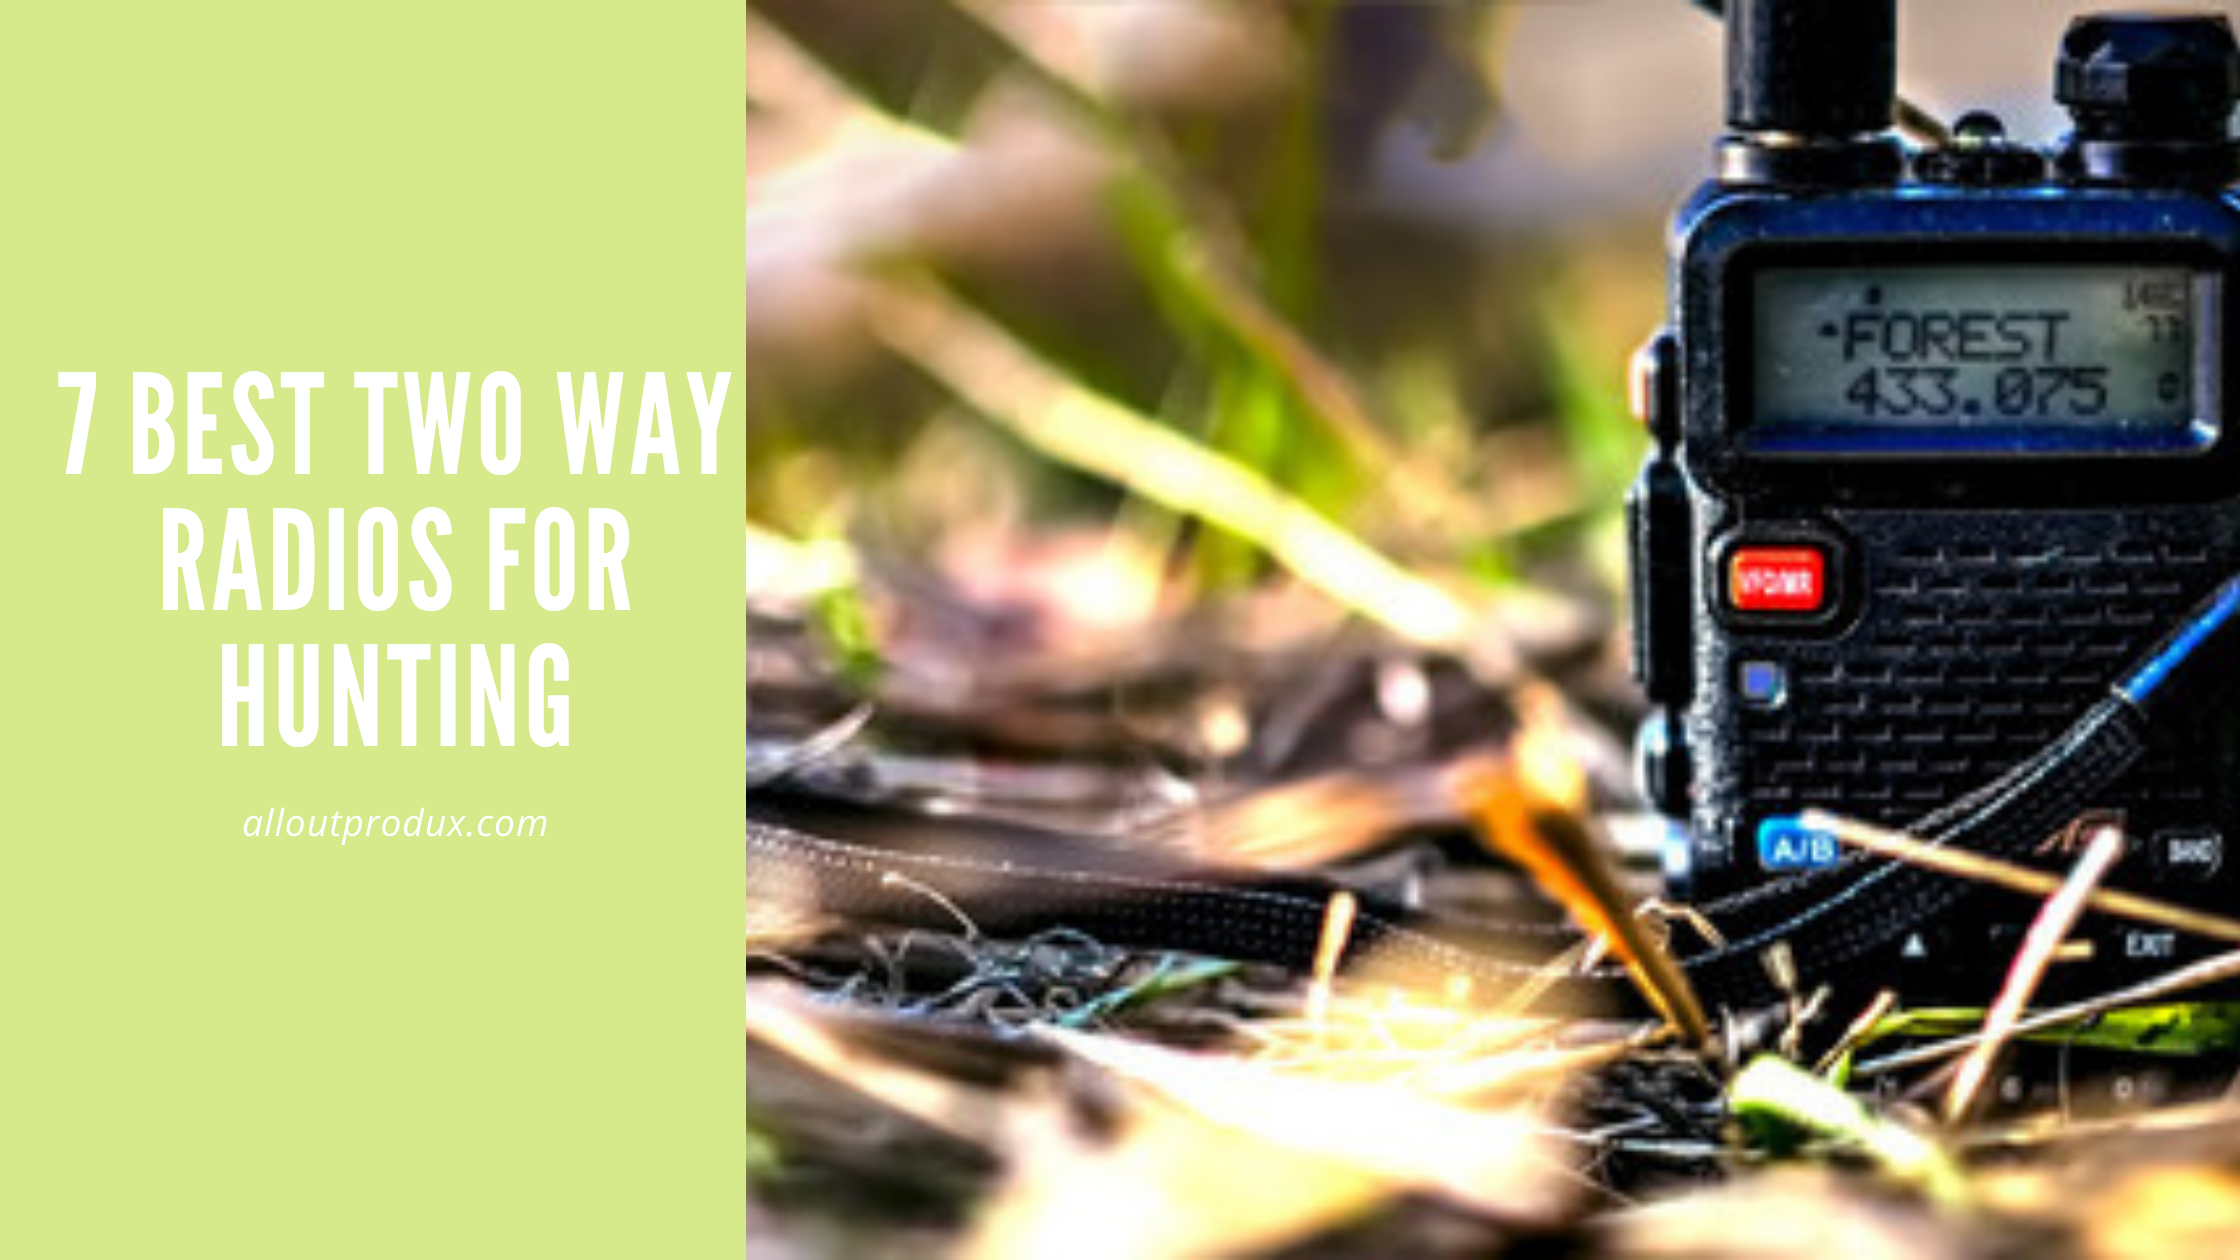 a two way radio on the ground of a hunting forest